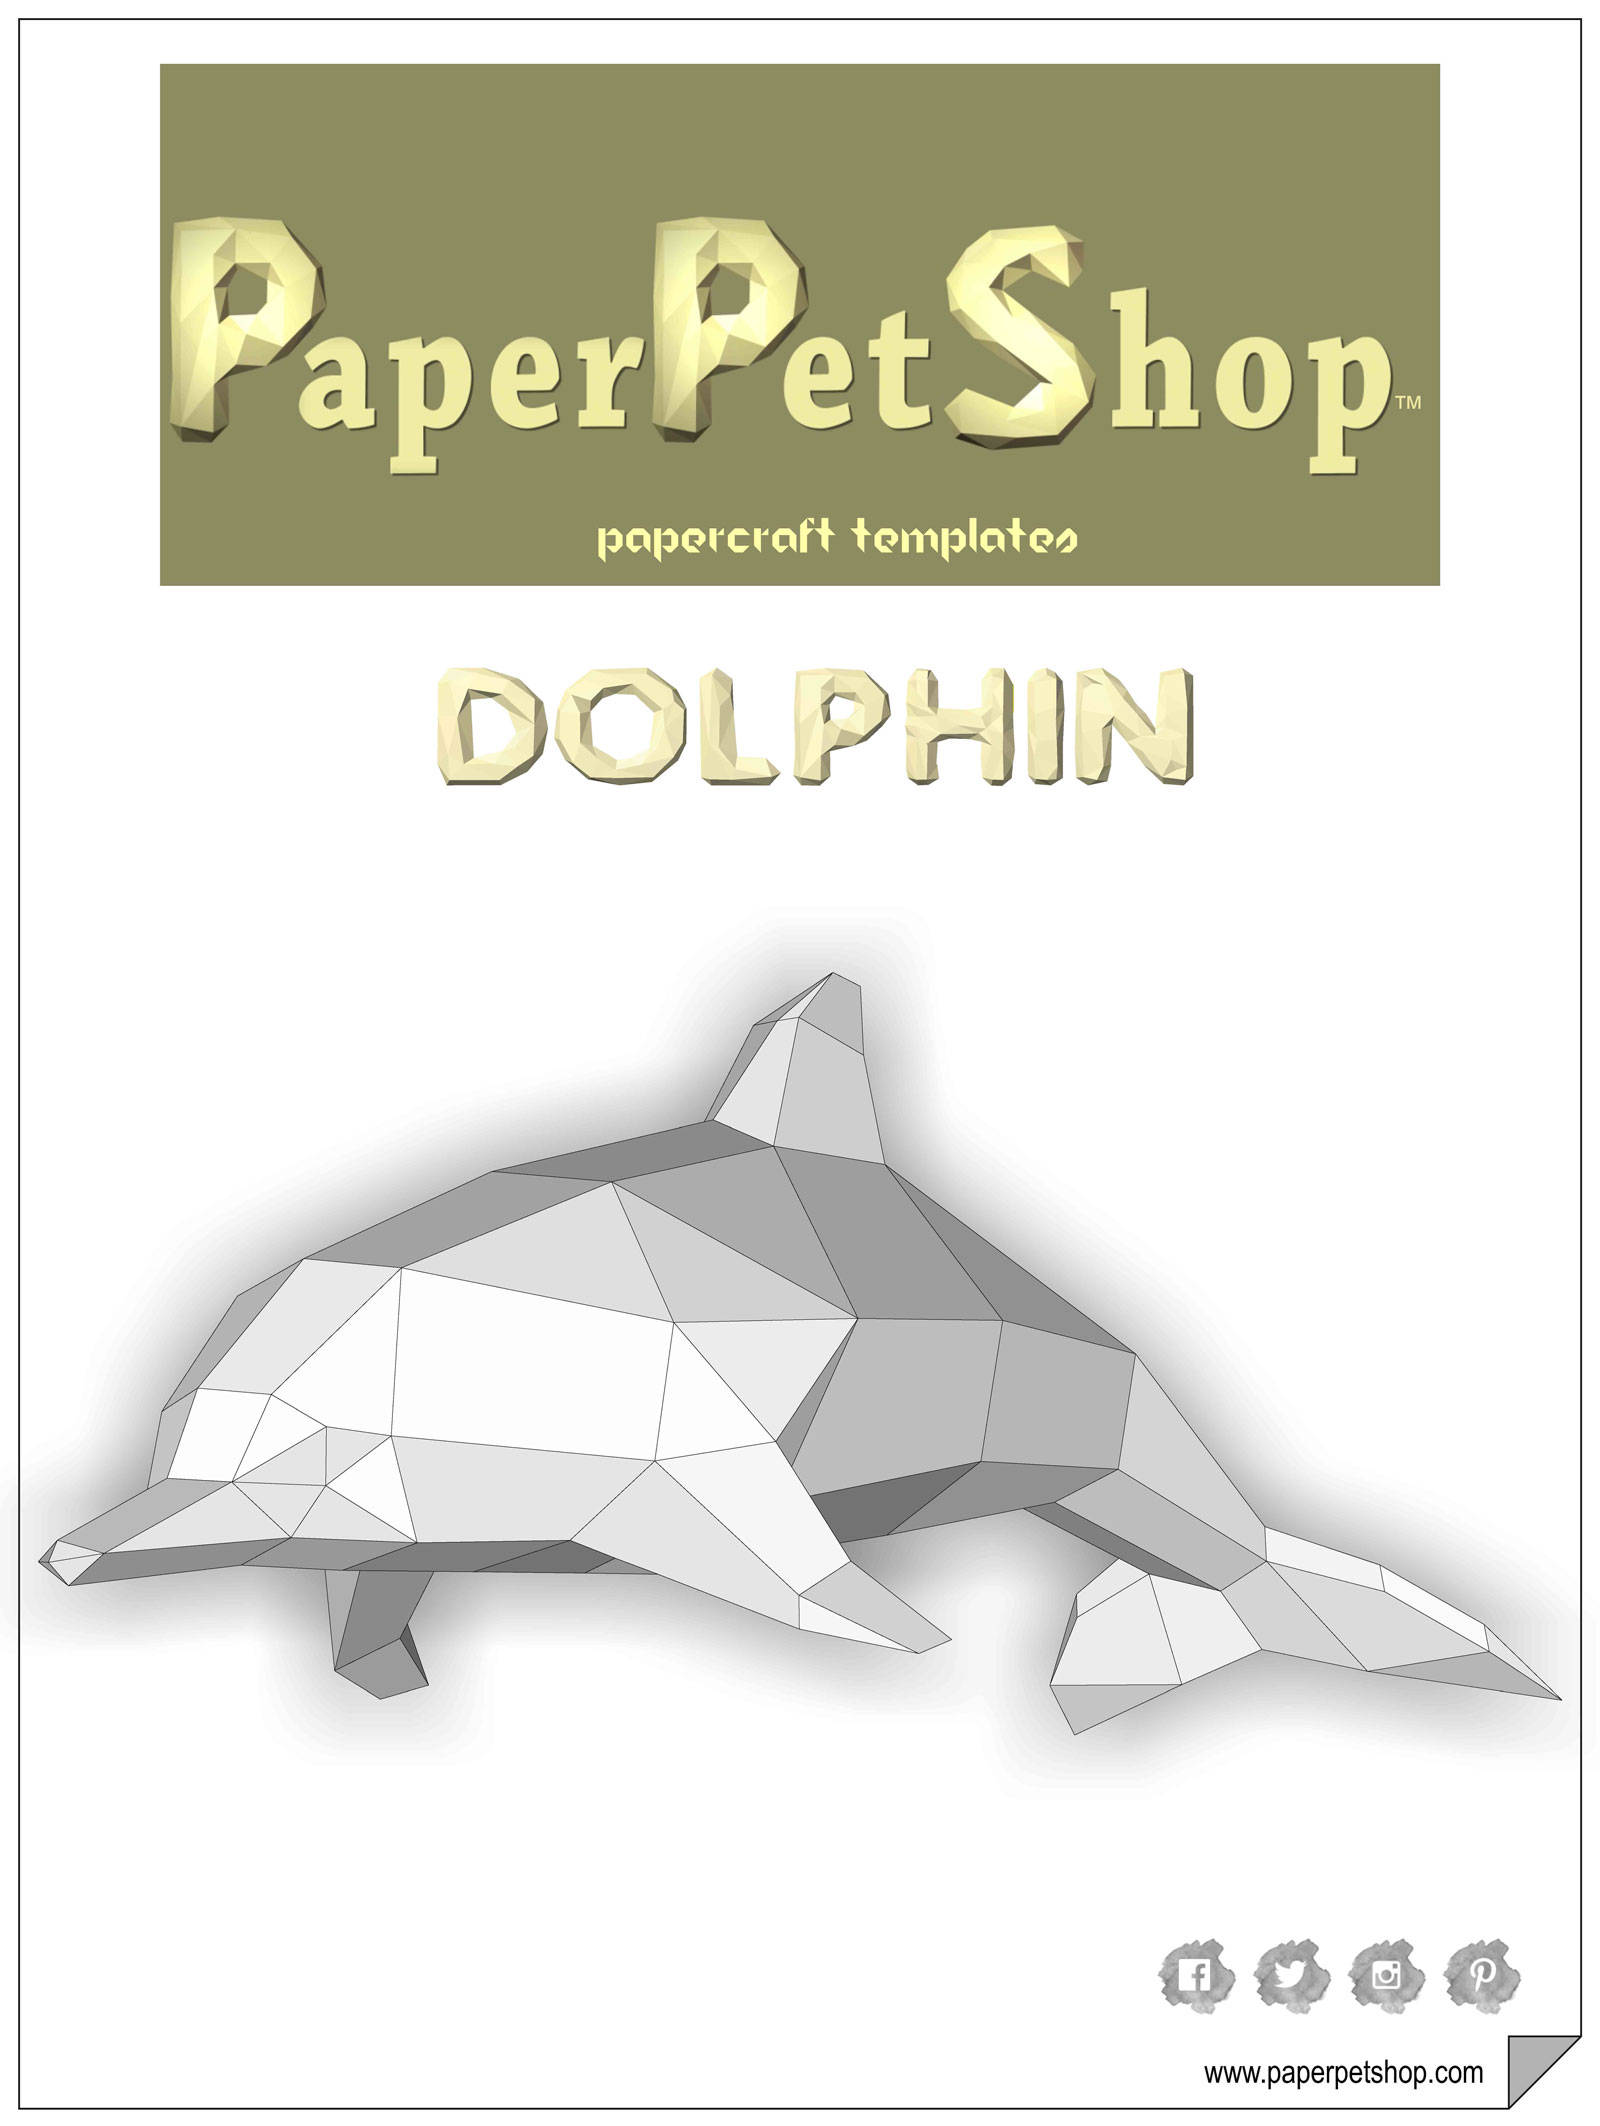 Papercraft Dolphin. Printable pdf template